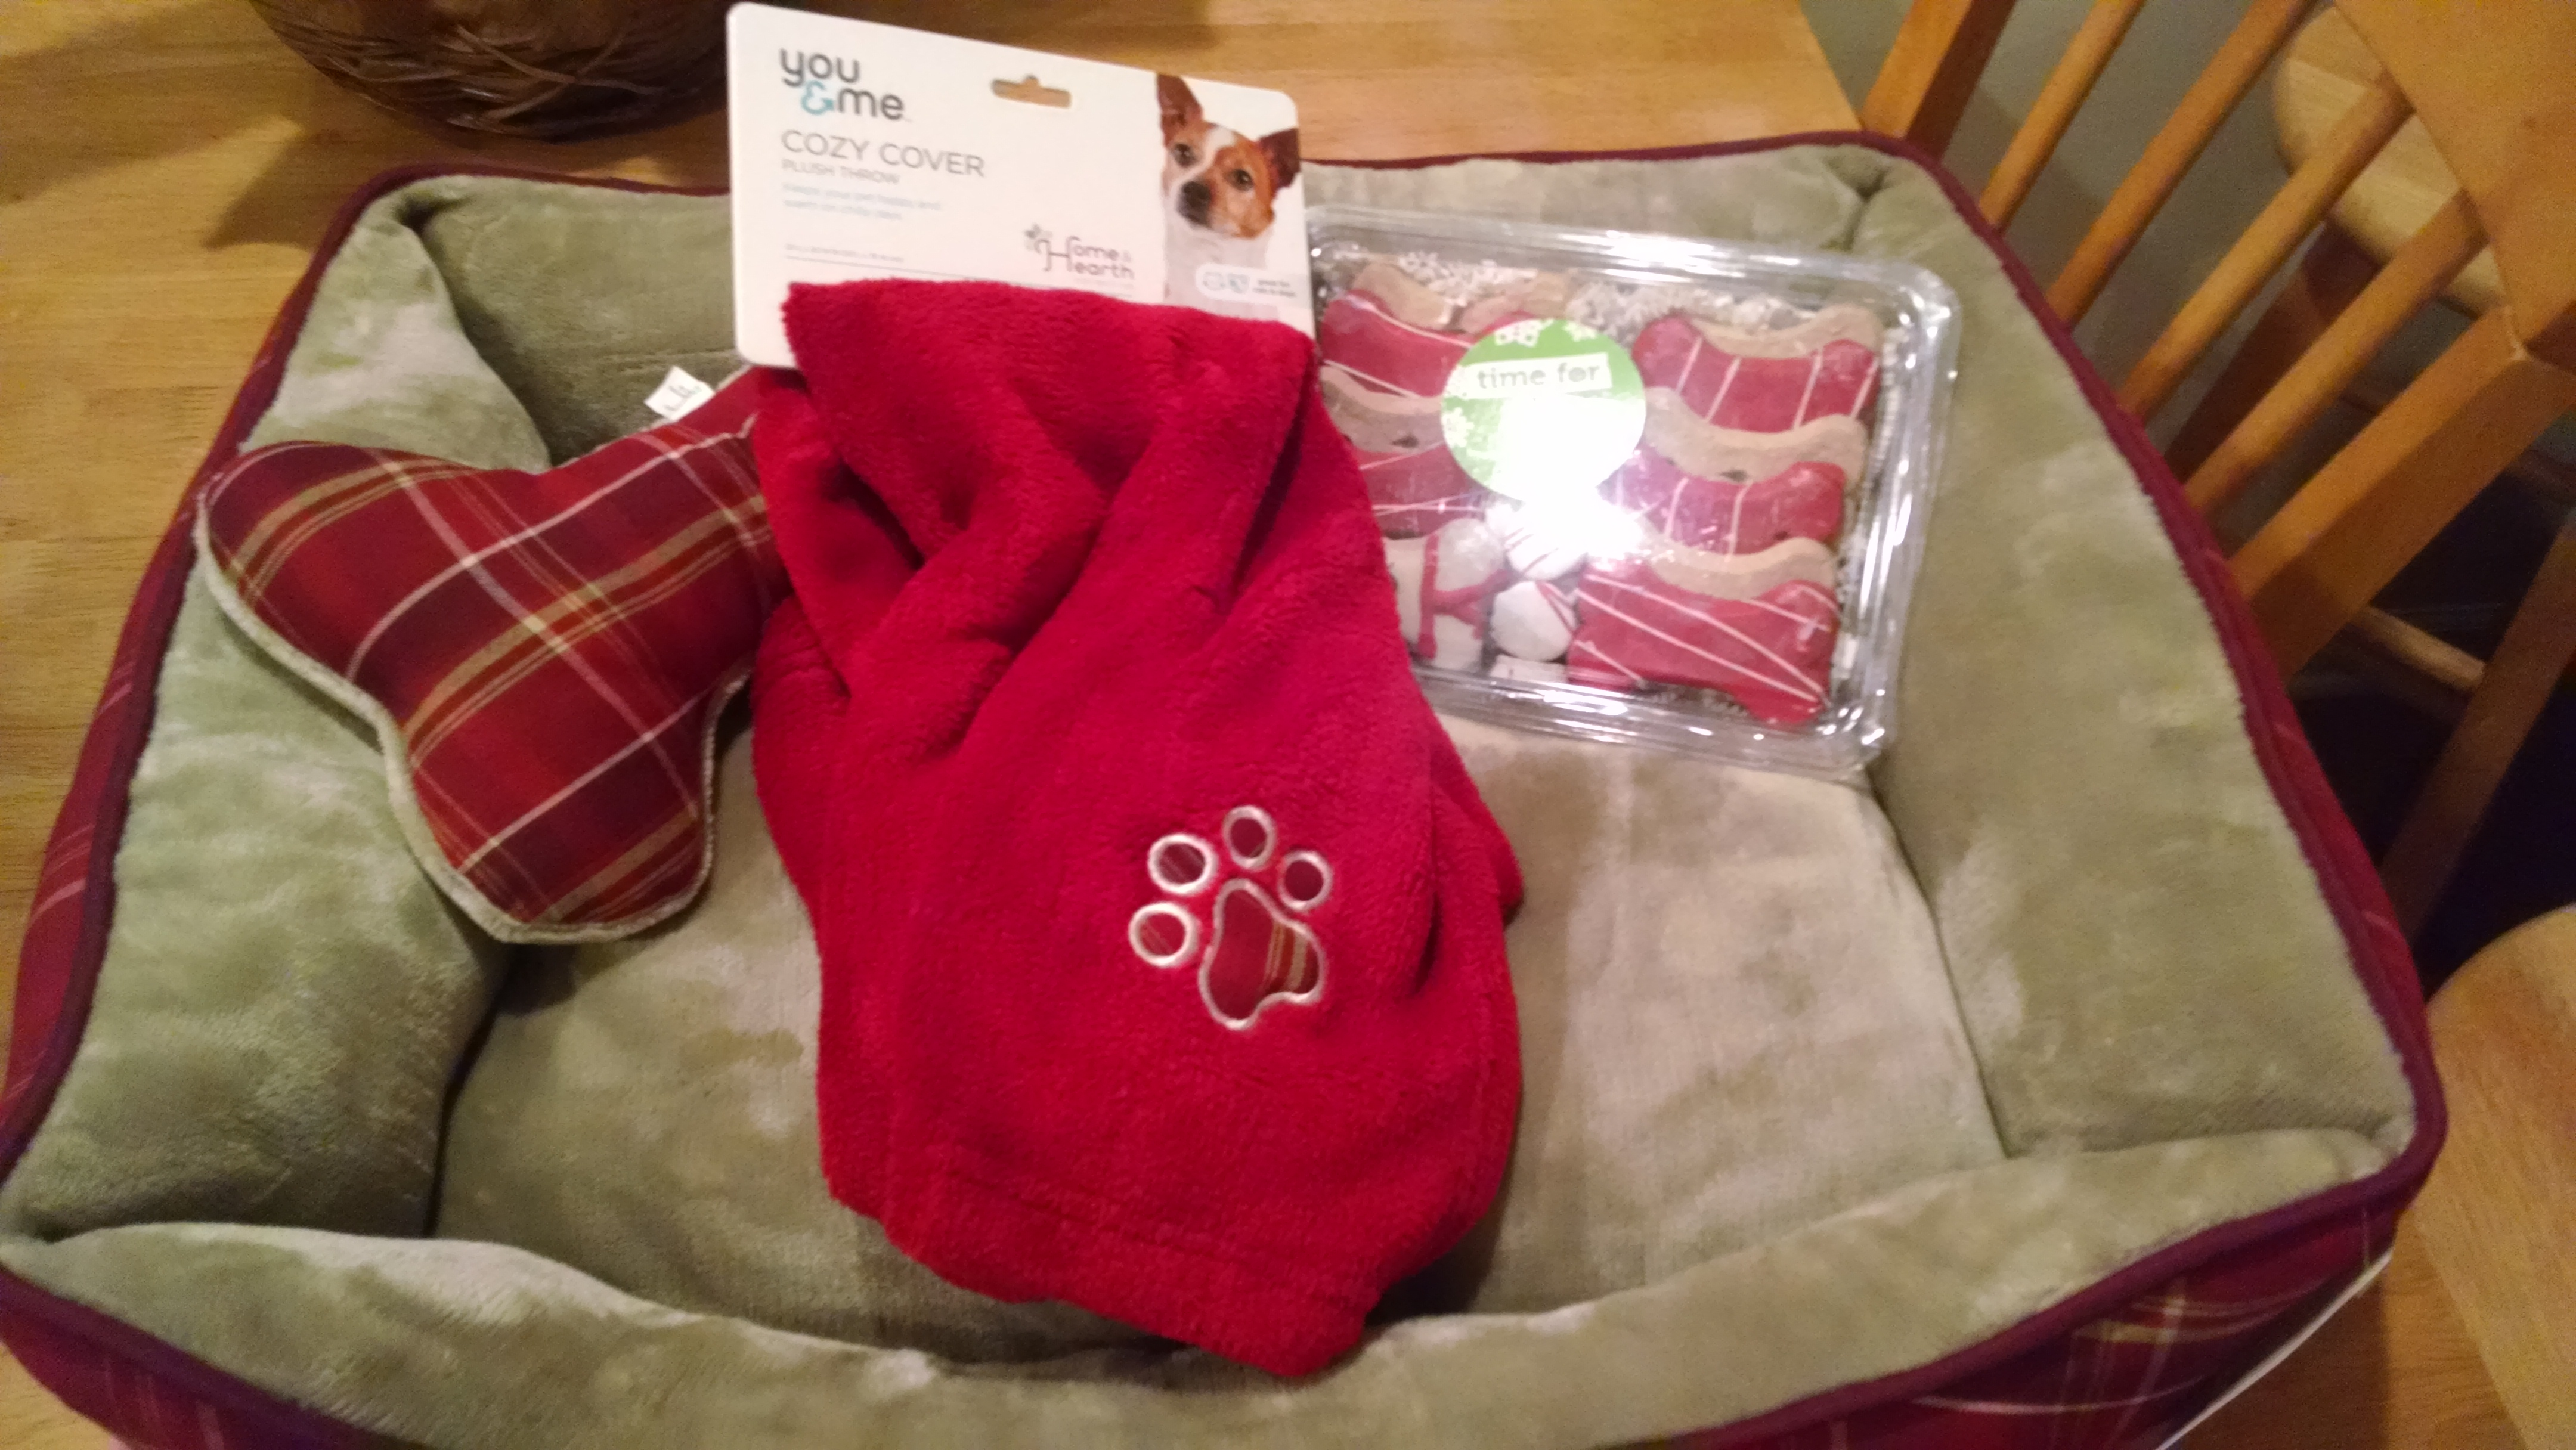 Raffle item Dog Bed Belle Mead Anmal Hospital December 2014 Open House